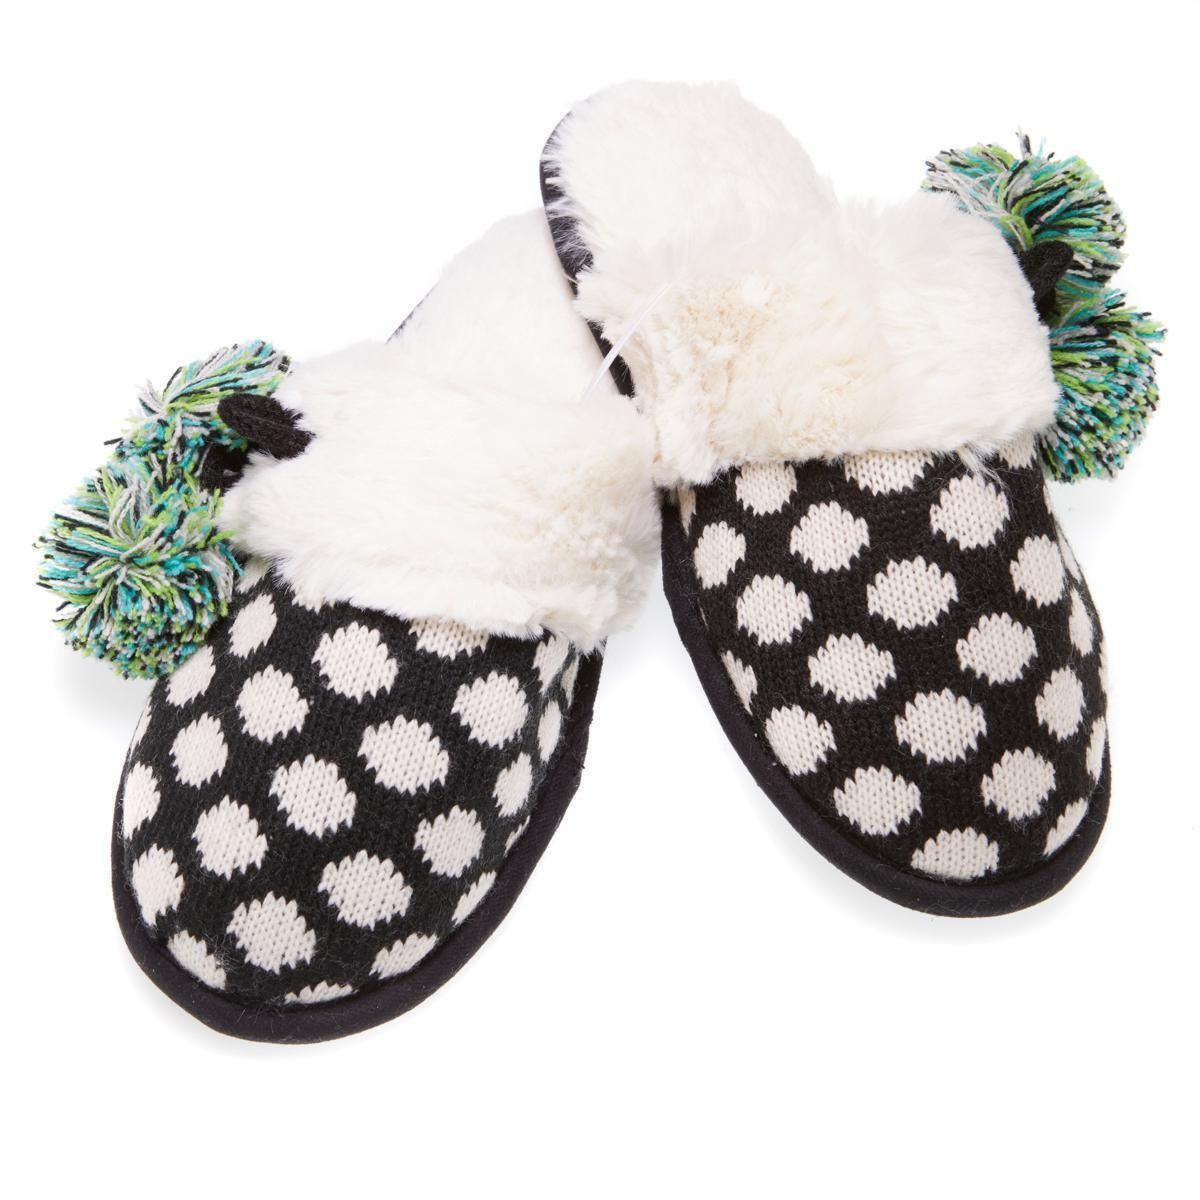 Foot Petals Fair Isle Knit Pom Pom Slipper 573-149